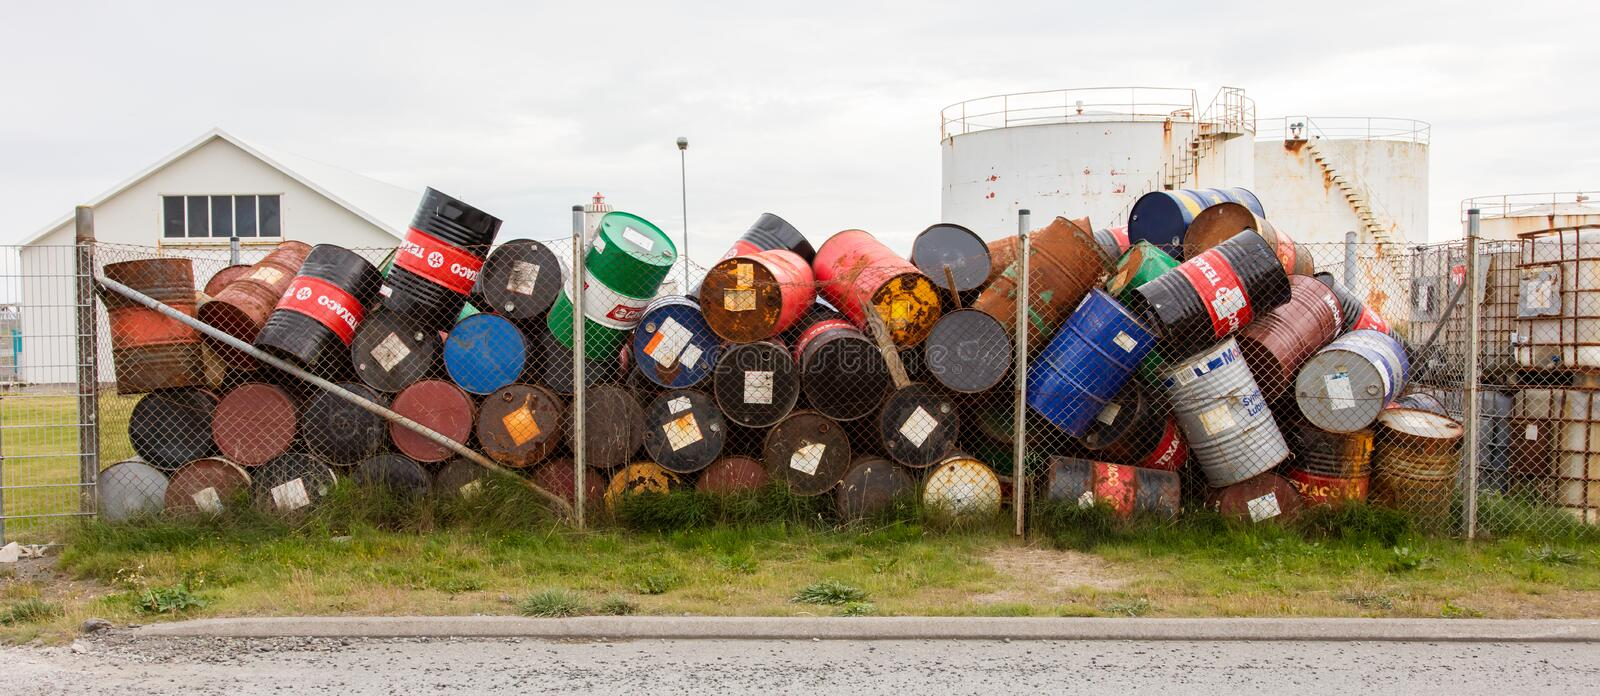 AKRANES, ICELAND - AUGUST 1, 2016: Oil barrels or chemical drums. Stacked up for cargo on August 1, 2016 stock images